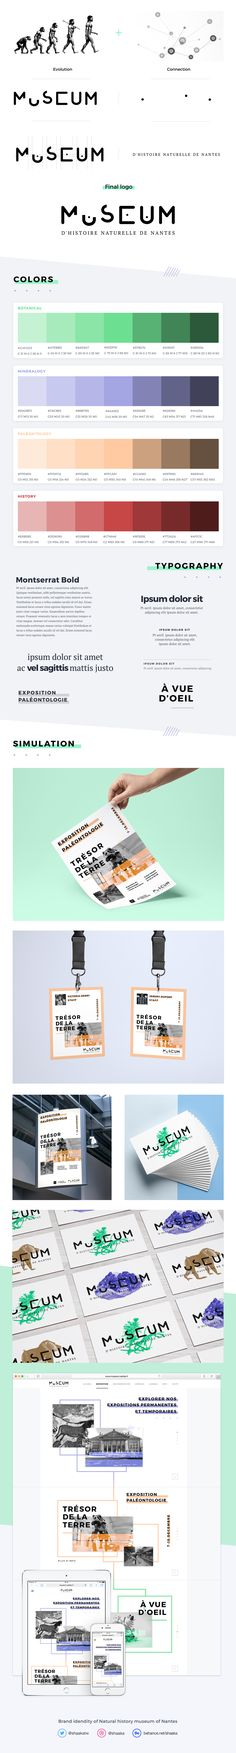 Natural history museum of Nantes - Brand identity on Behance